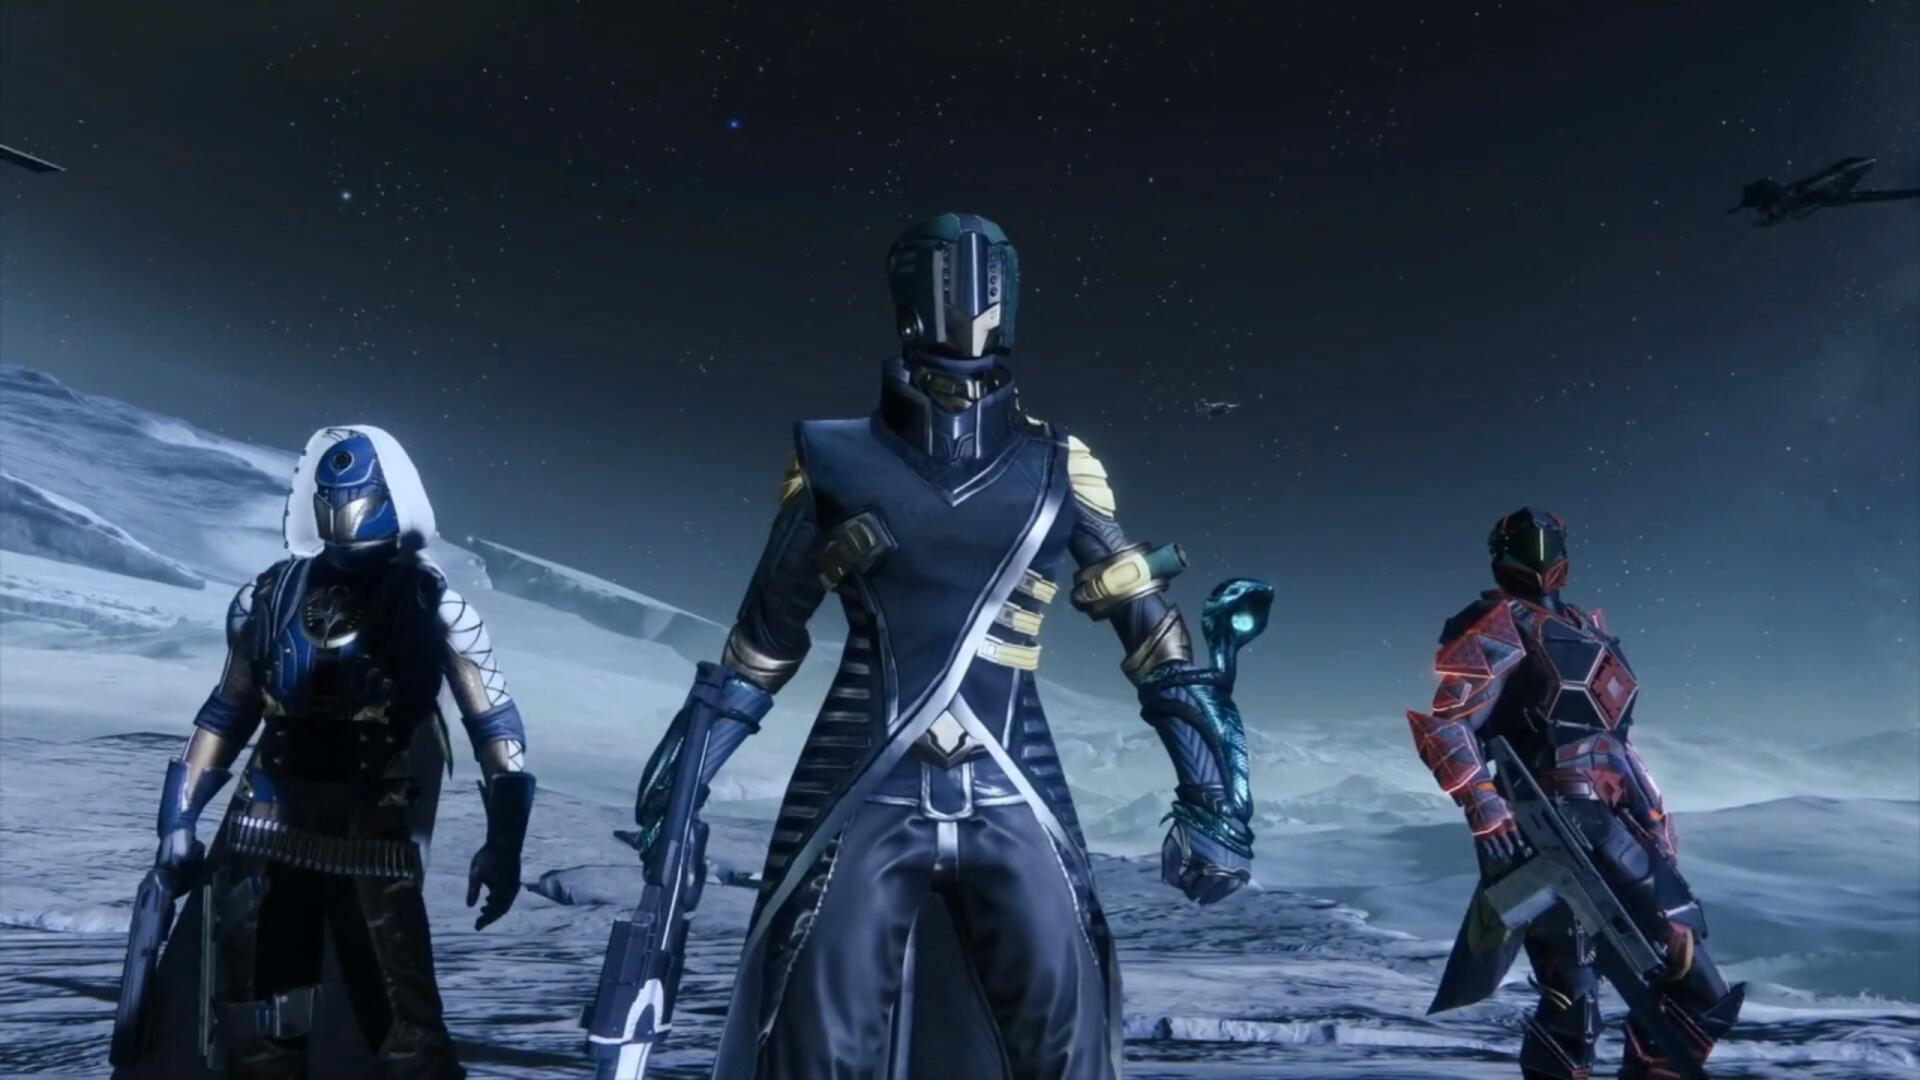 Destiny 2 on PC is Migrating From Battle.net to Steam